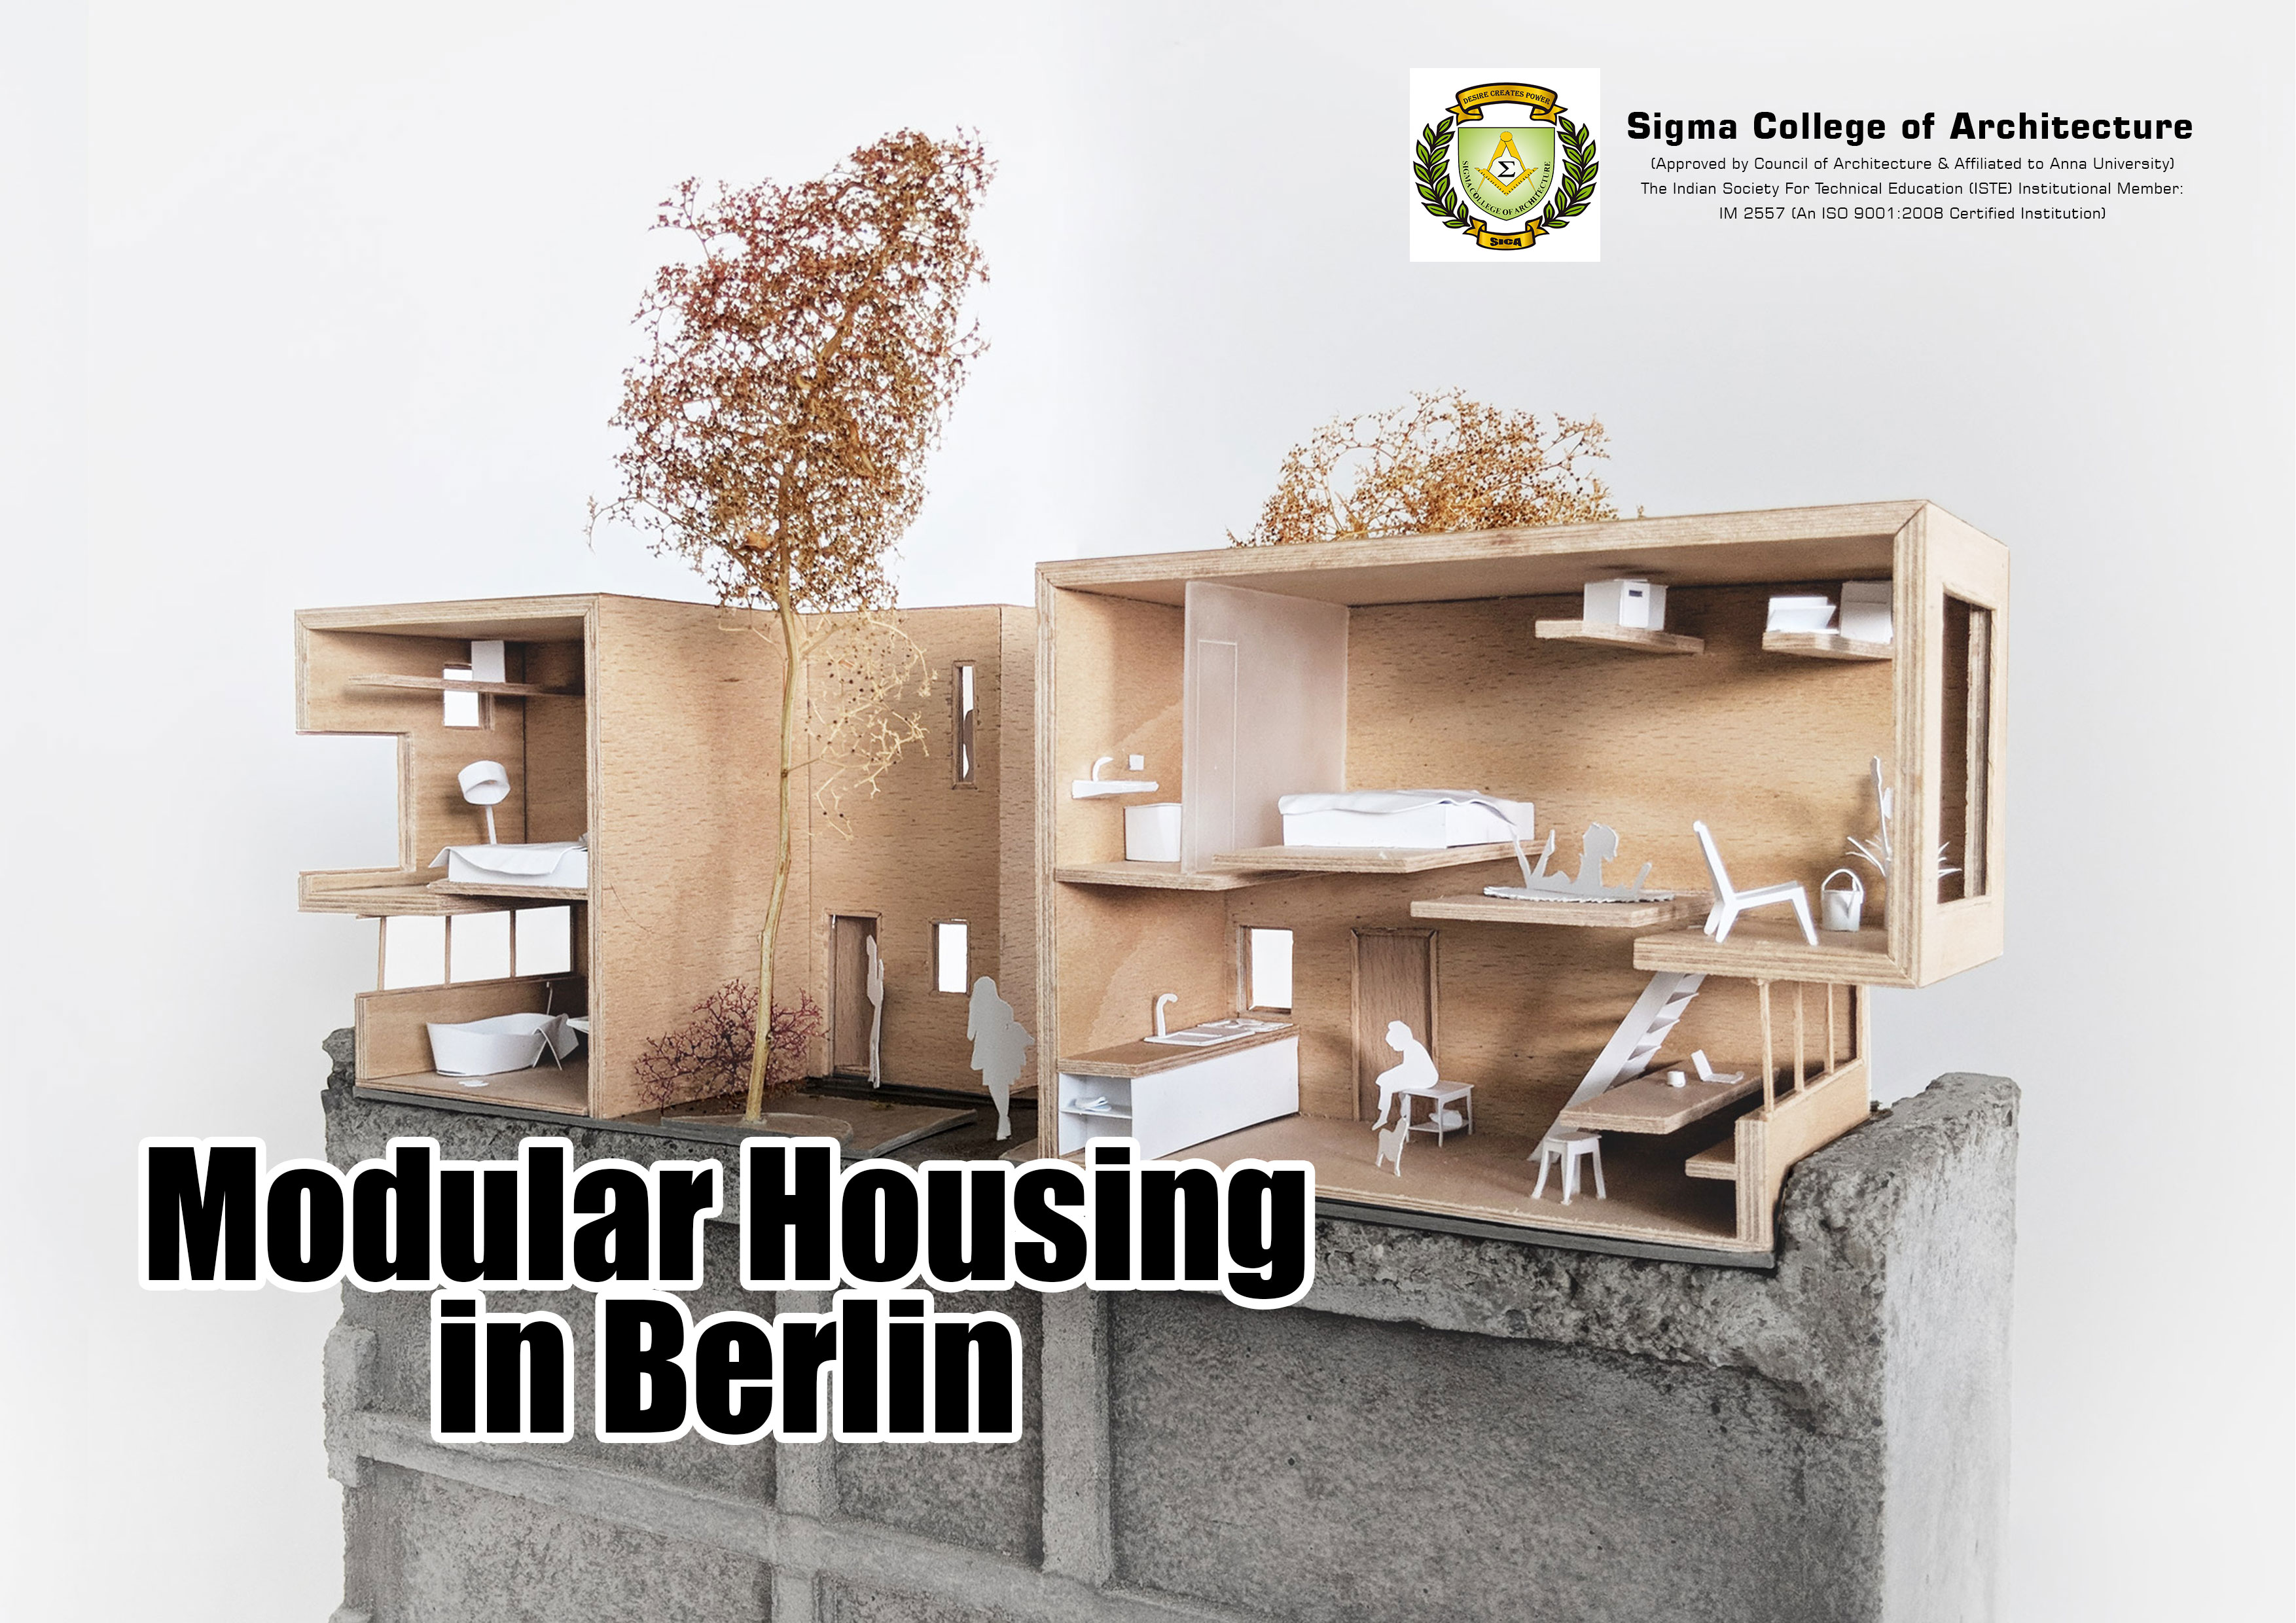 Modular Housing in Berlin